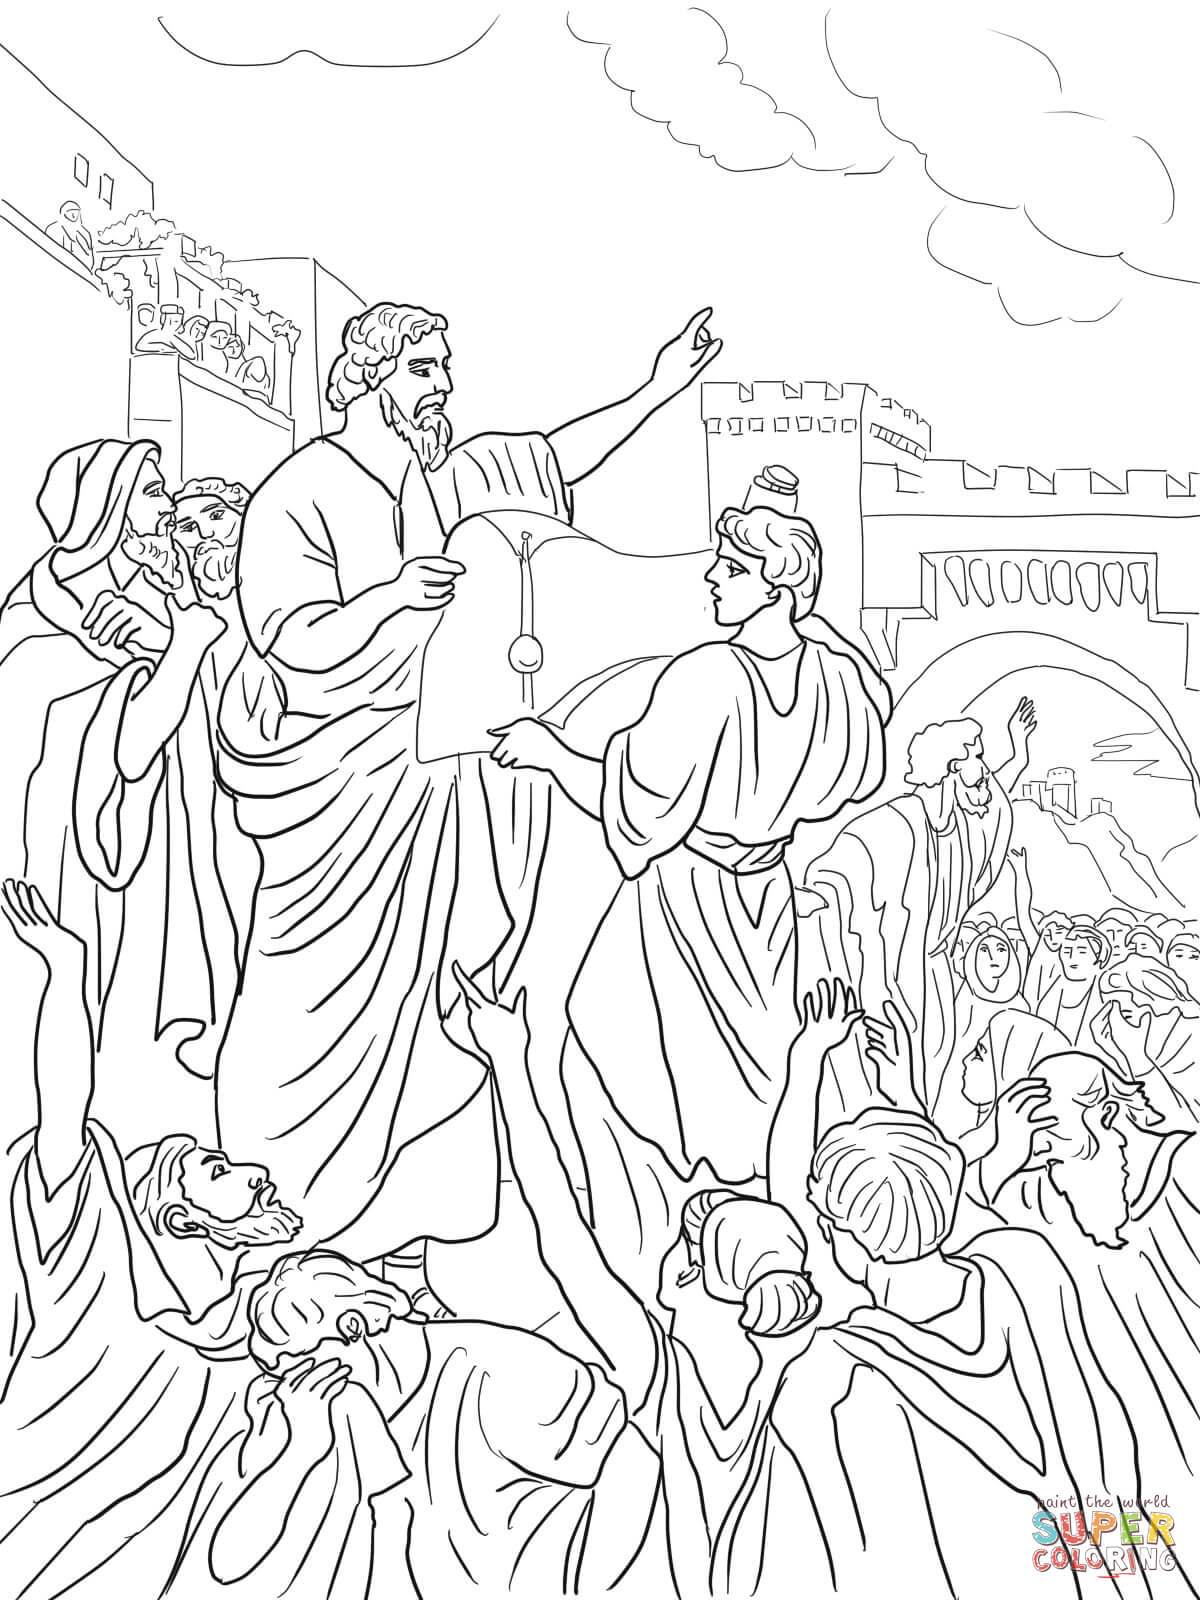 The Best Free Nehemiah Coloring Page Images Download From 50 Free